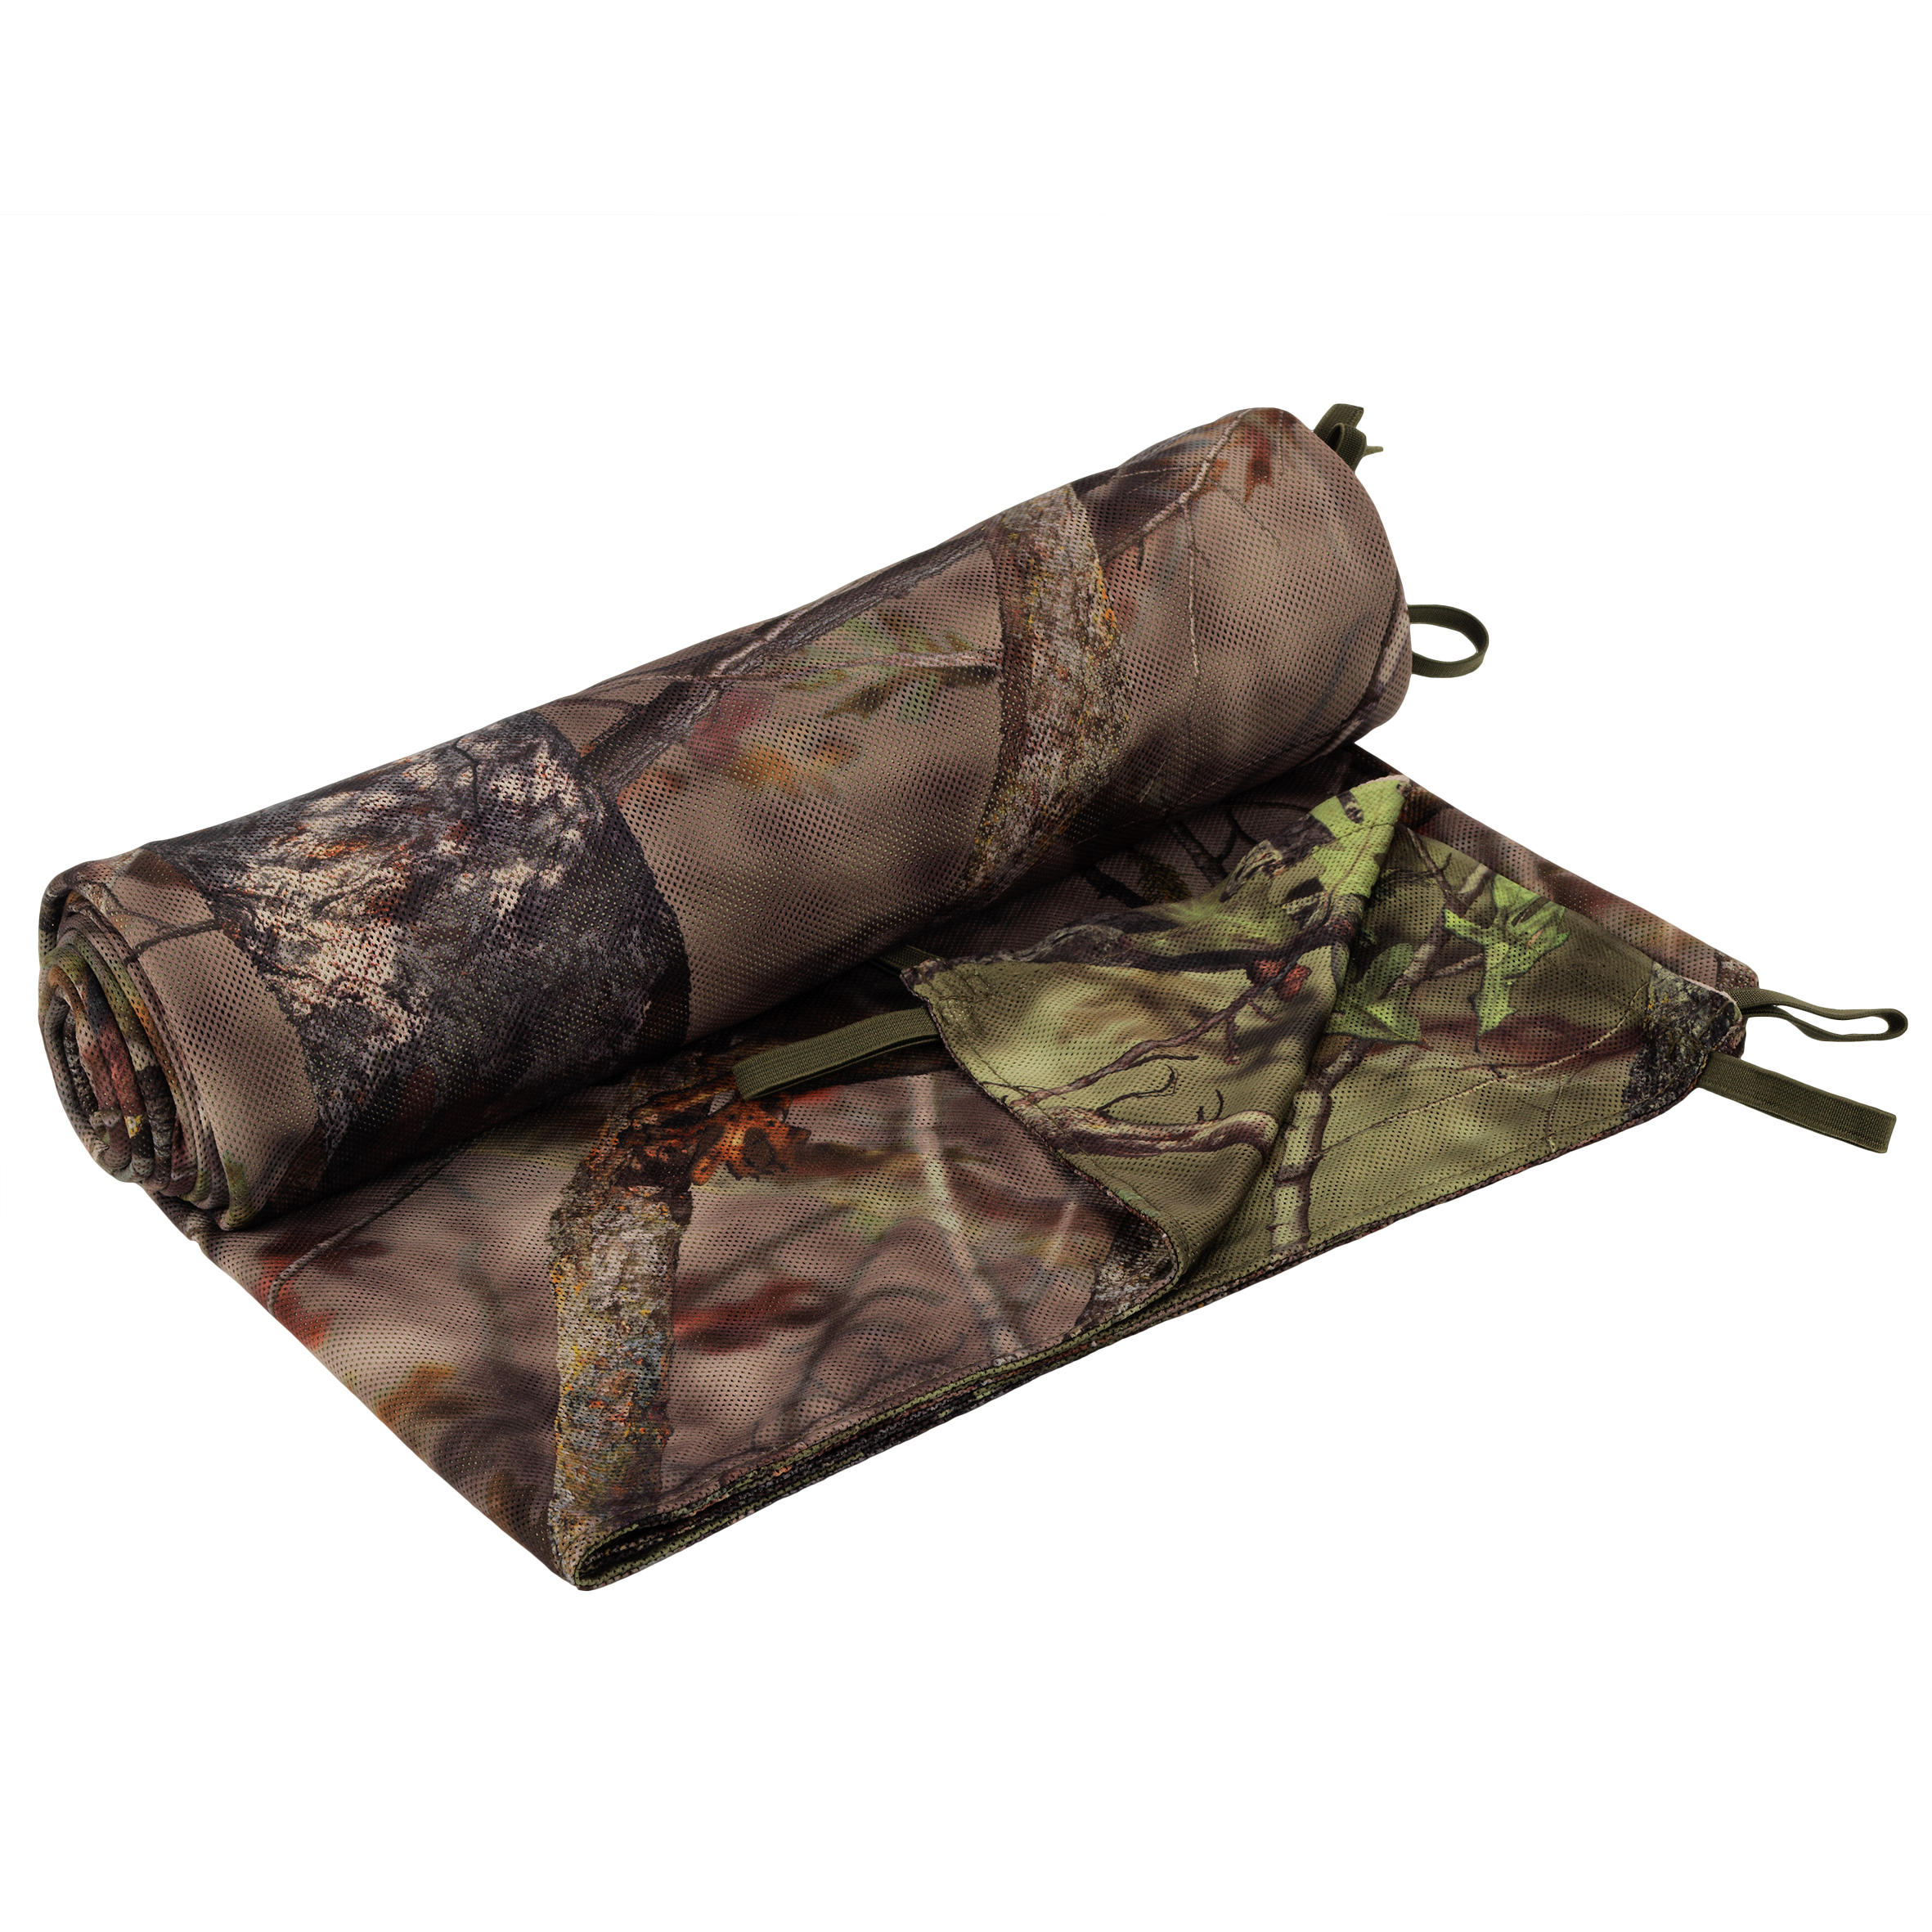 """FILET CHASSE CAMOUFLAGE RÉVERSIBLE 4'7"""" x 7'3"""""""